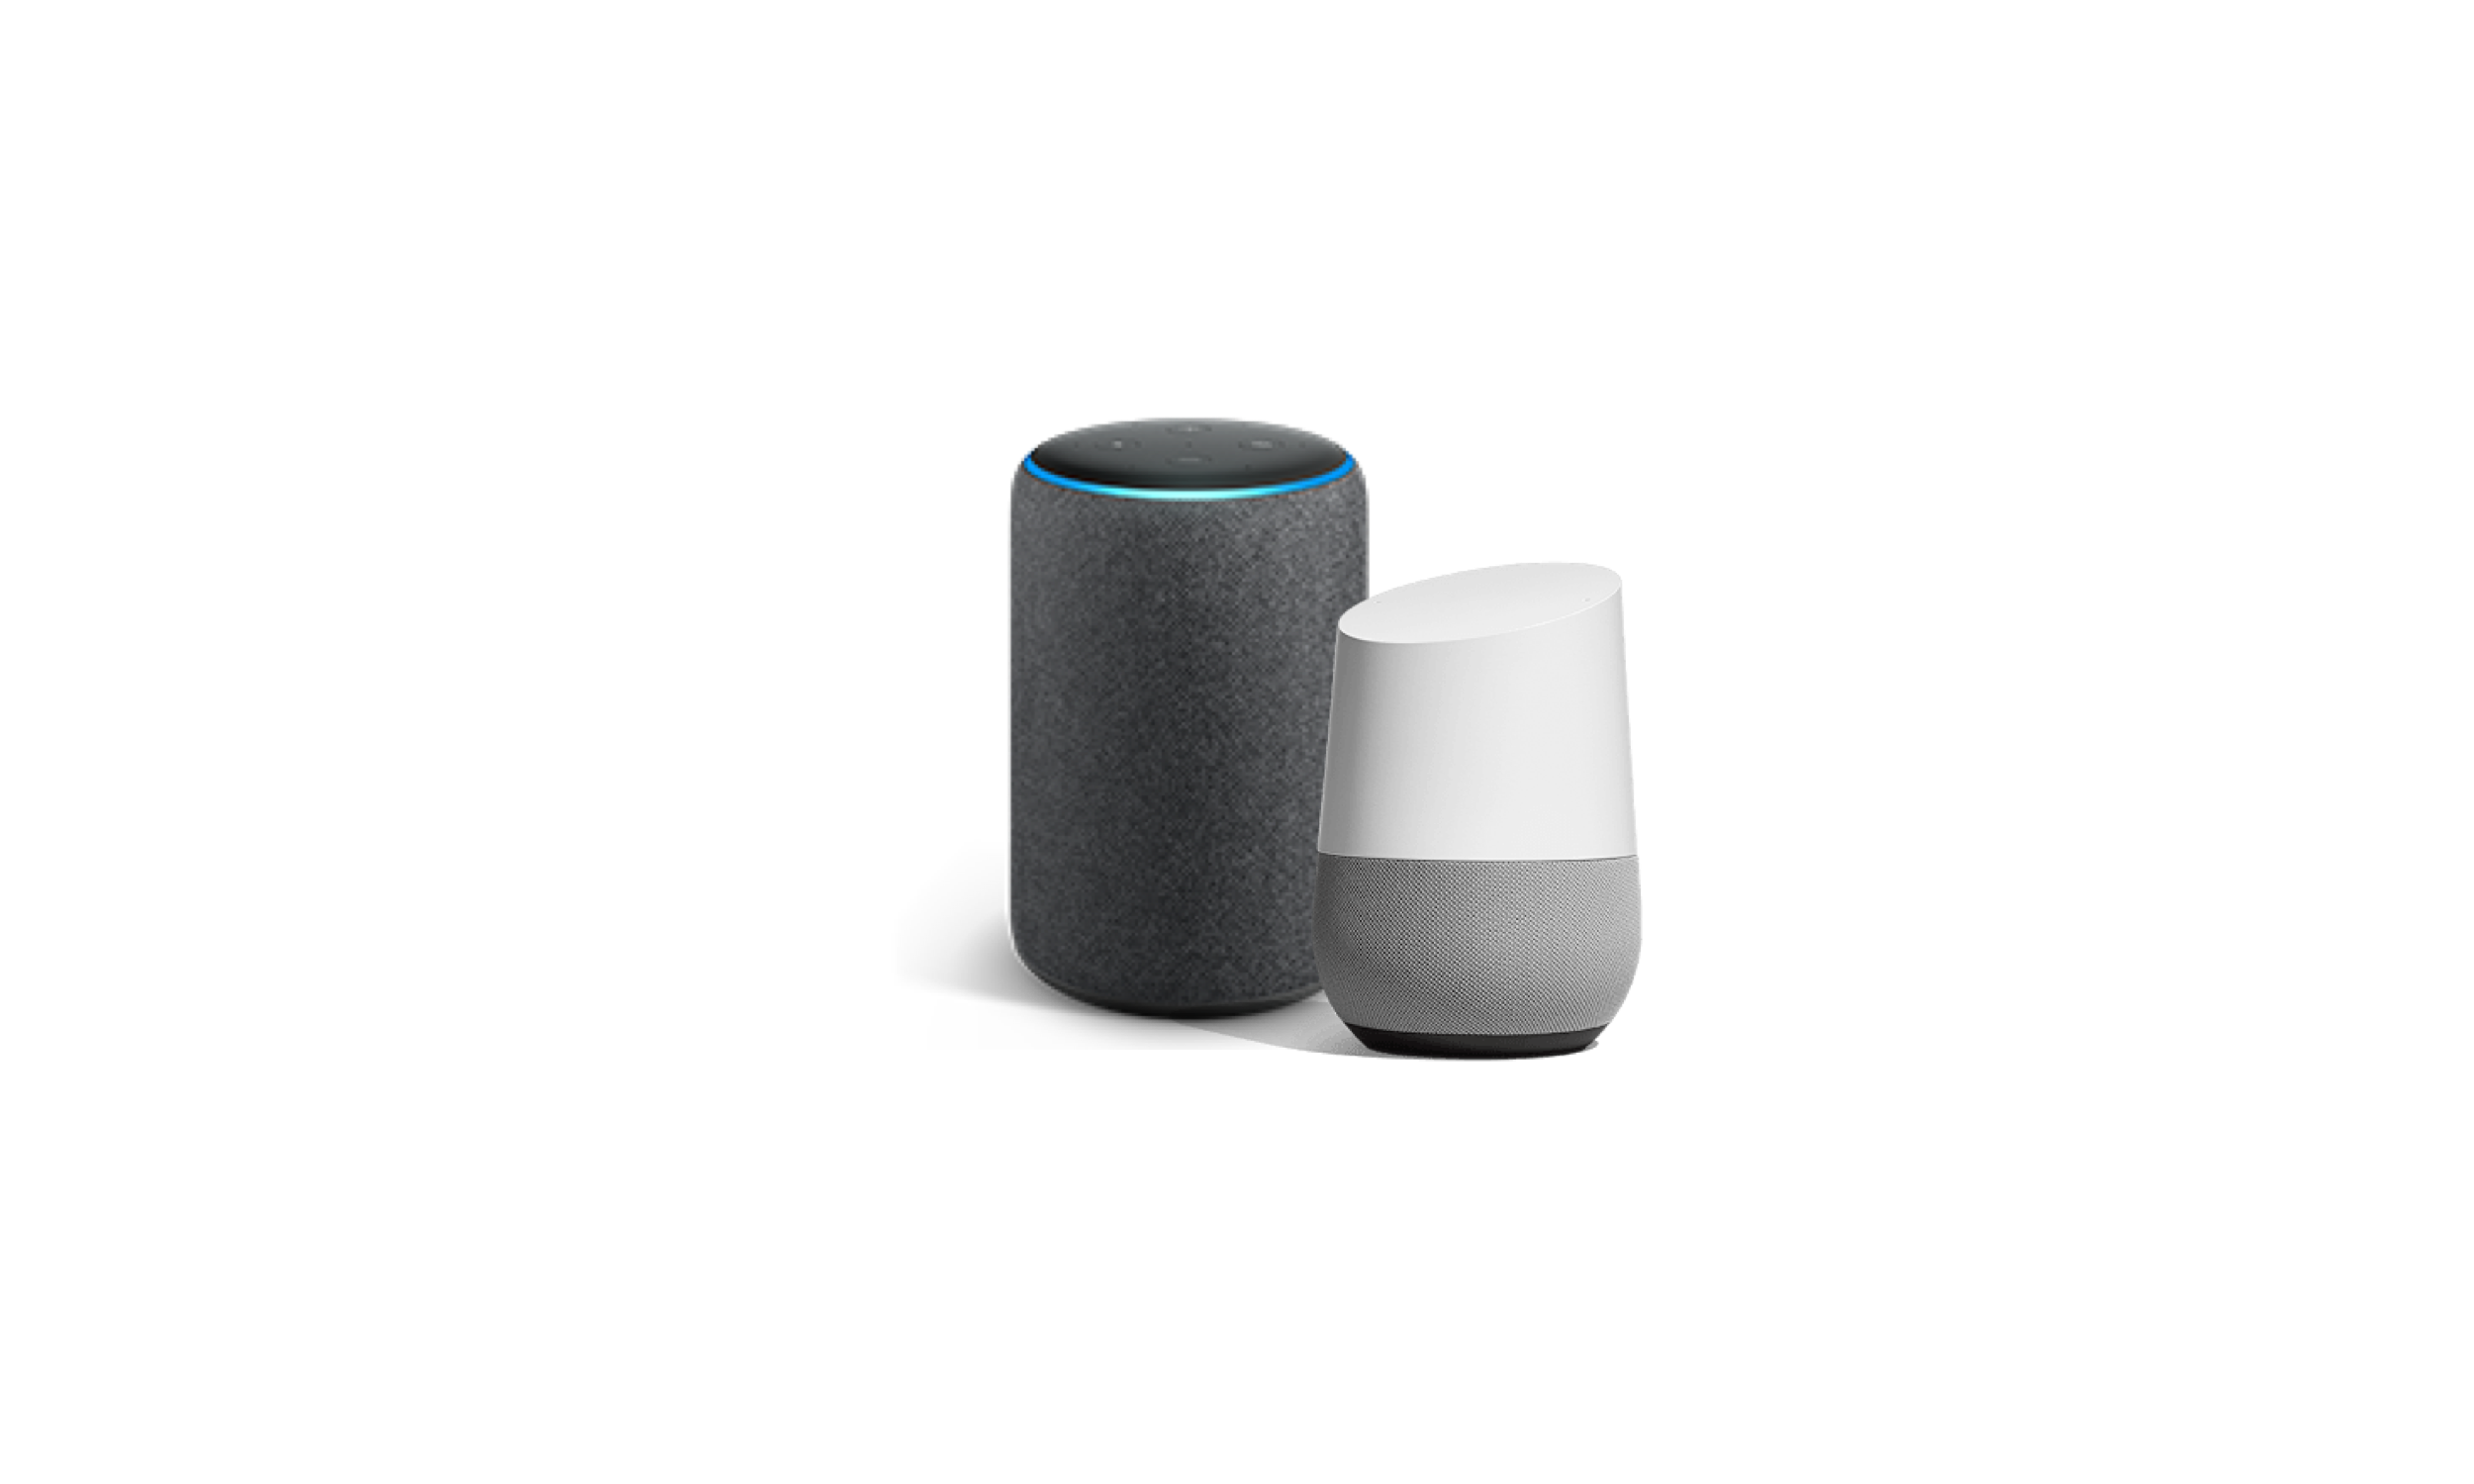 With the power of your voice - From step-by-step cooking instructions to simply adding items to your pantry, enjoy a hands-free cooking experience with Chefling enabled by Amazon Alexa, Google Home, and Siri voice assistants.